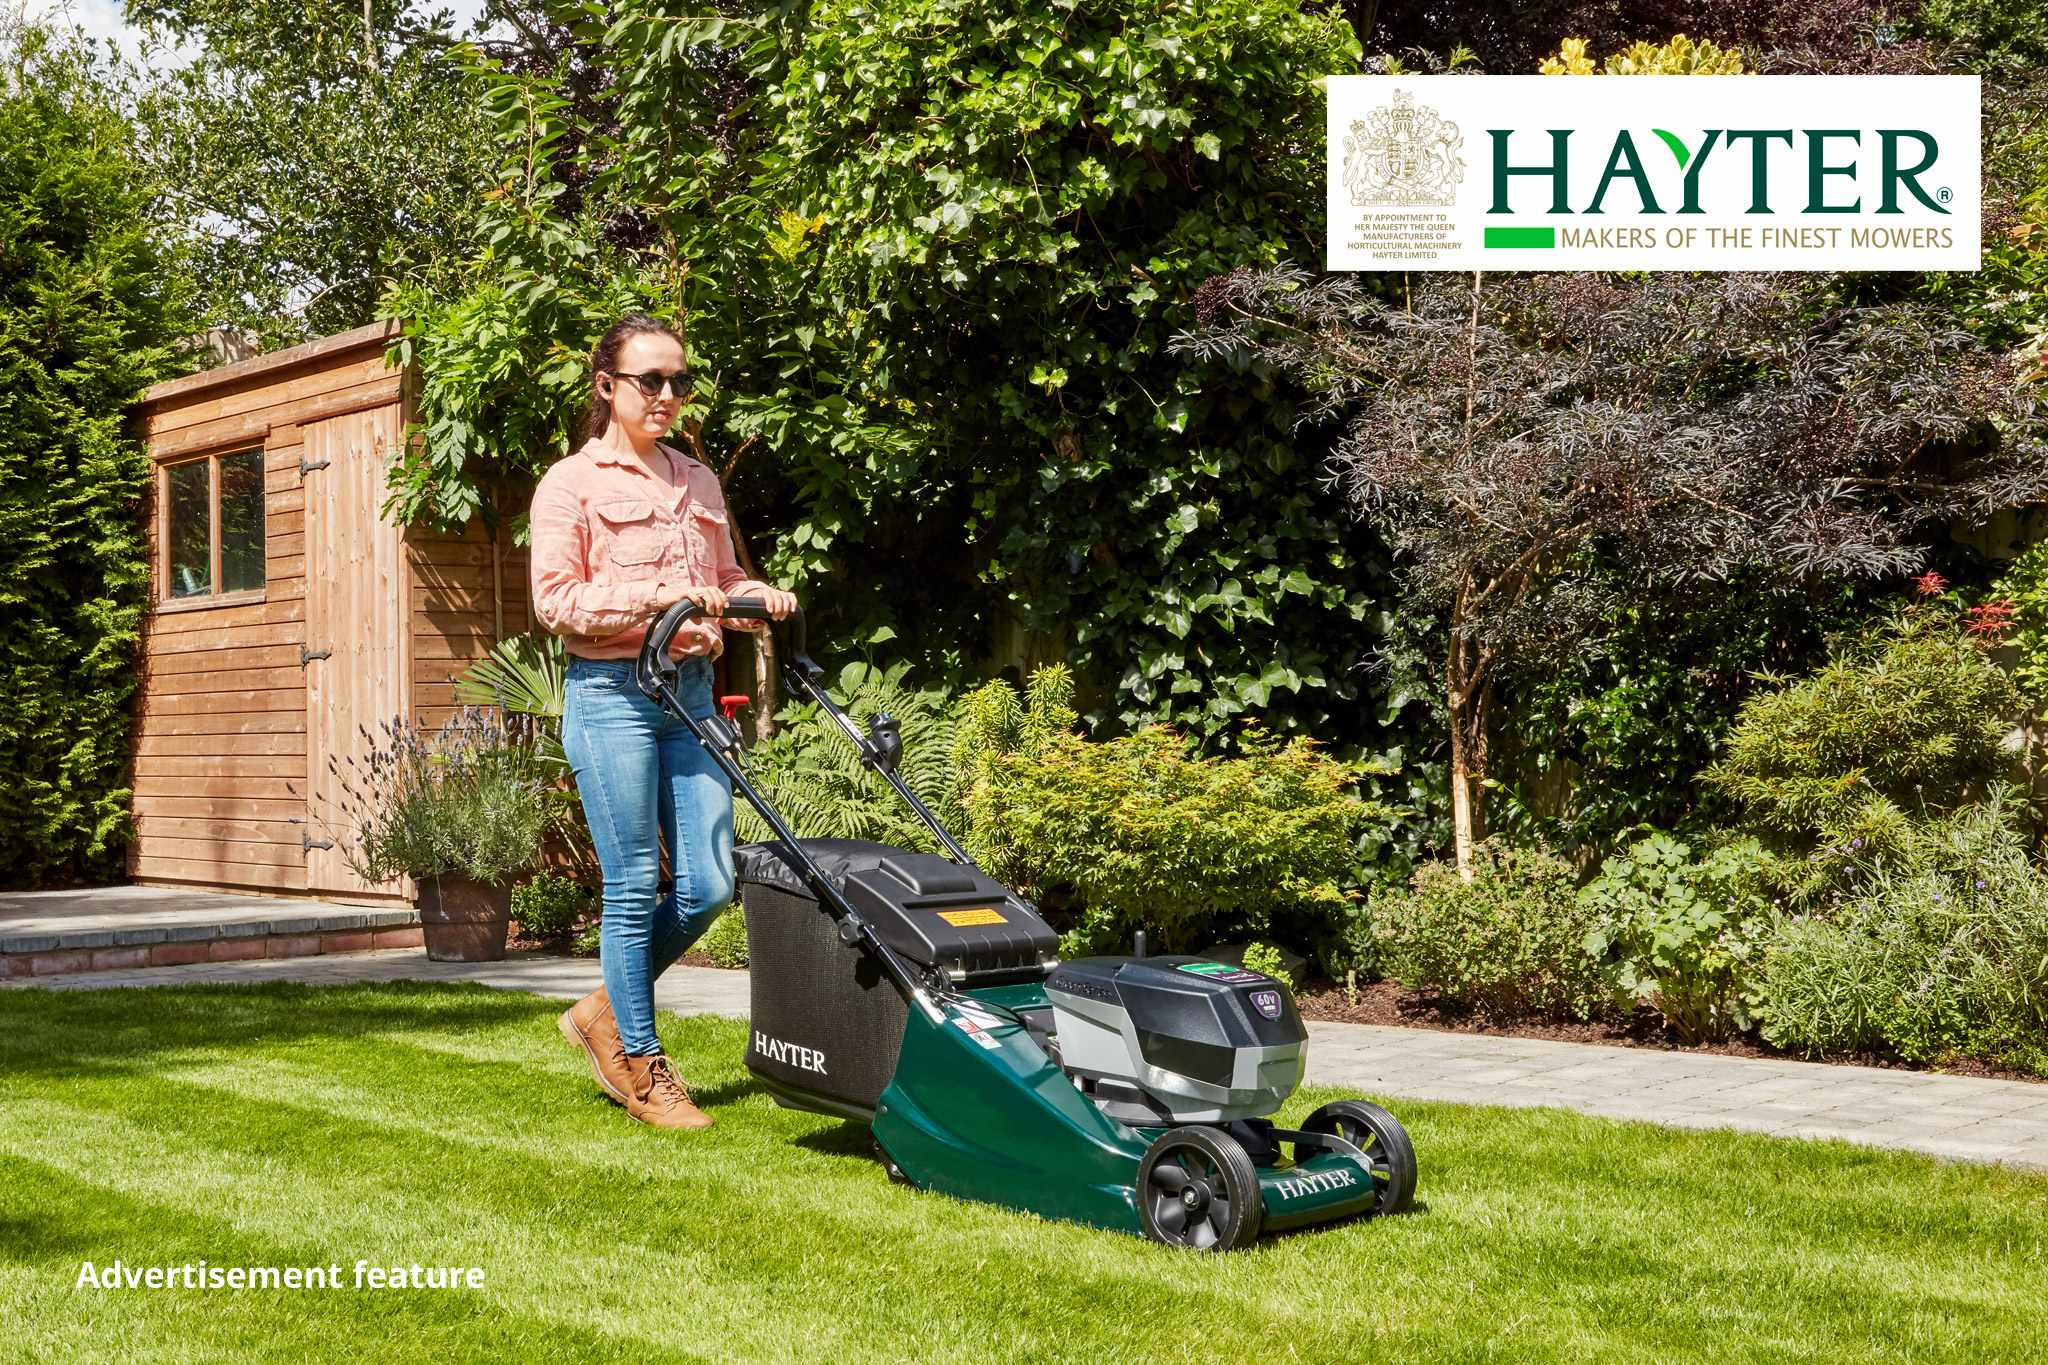 Hayter competition - win a cordless lawnmower and trimmer. BBC Gardeners' World Magazine